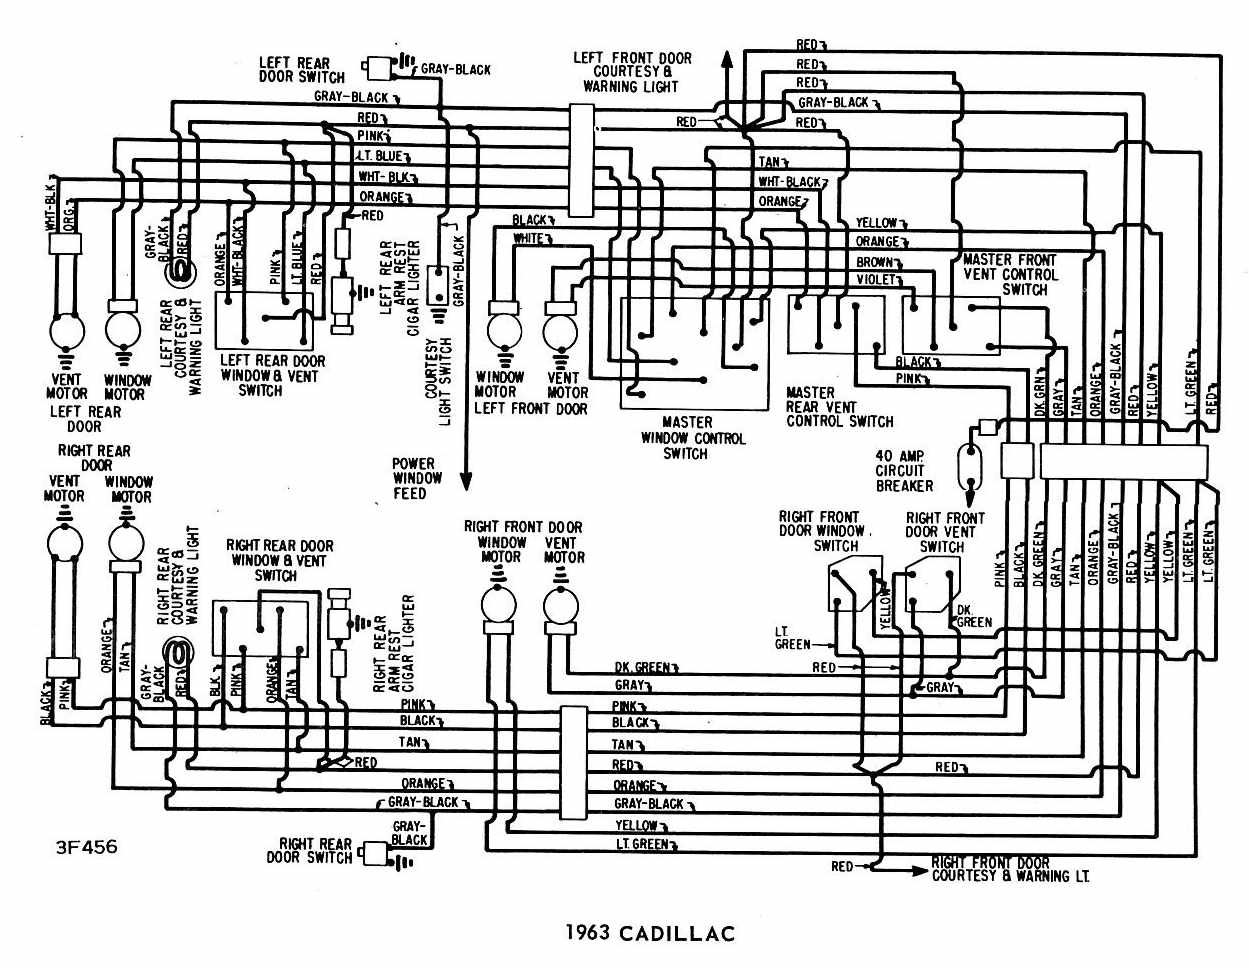 Cadillac+1963+Windows+Wiring+Diagram cadillac 1963 windows wiring diagram all about wiring diagrams 2002 cadillac deville wiring schematics at soozxer.org